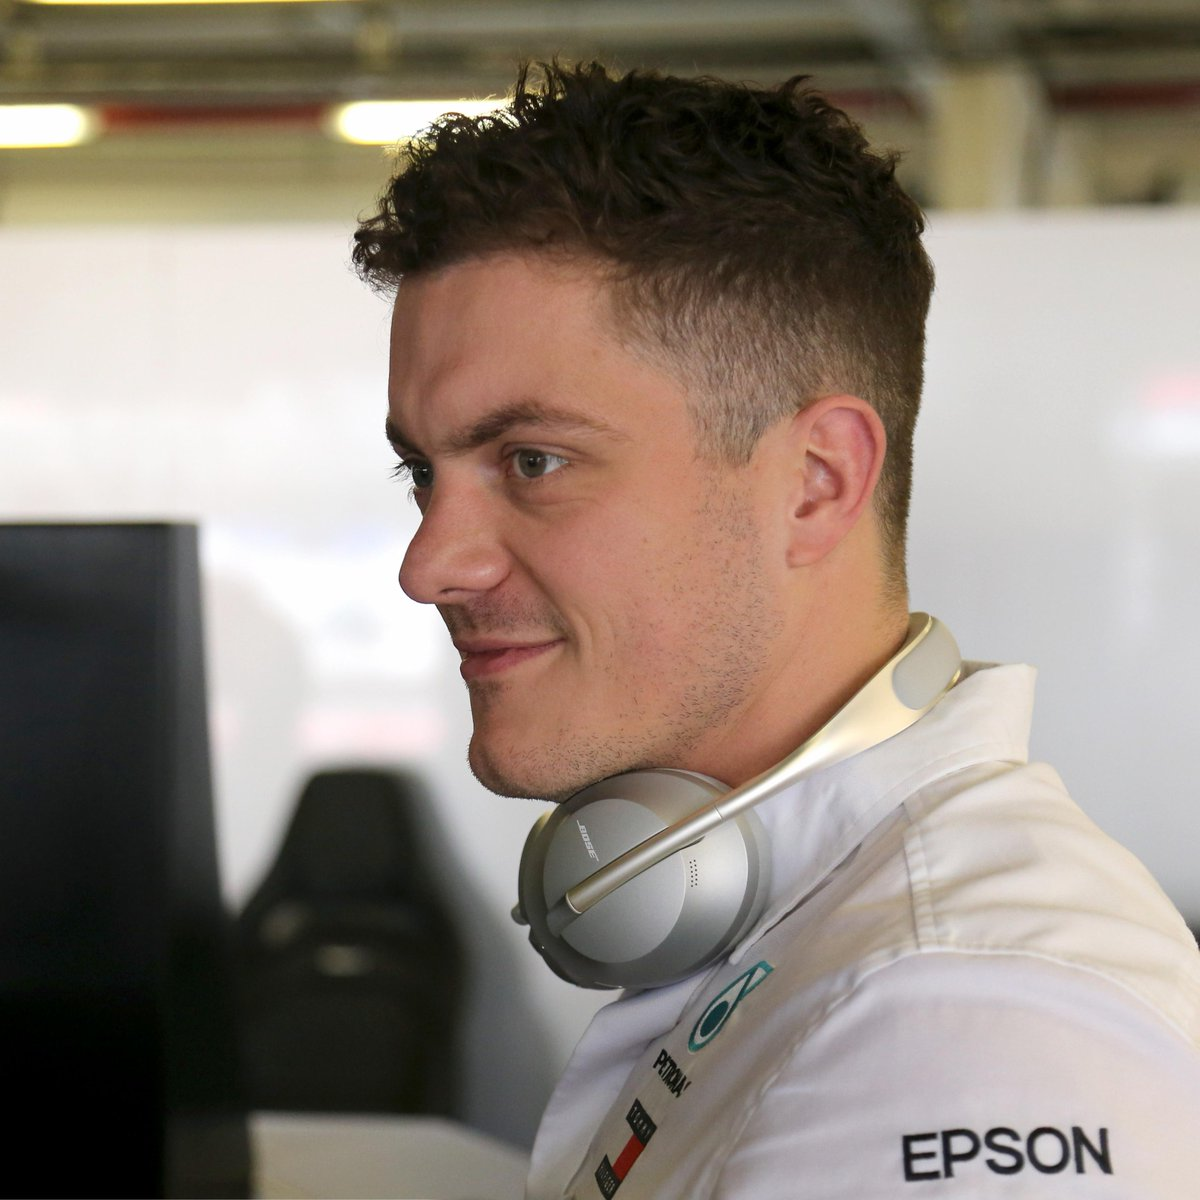 """""""…if you're in a situation where you're pushing your own limits, you're probably doing the right thing."""" - Steve Knowles, Race Strategy Engineer, @MercedesAMGF1 #ThisIsMyRace #ATeamComeTrue 🎧bose.life/2NR5mxI"""